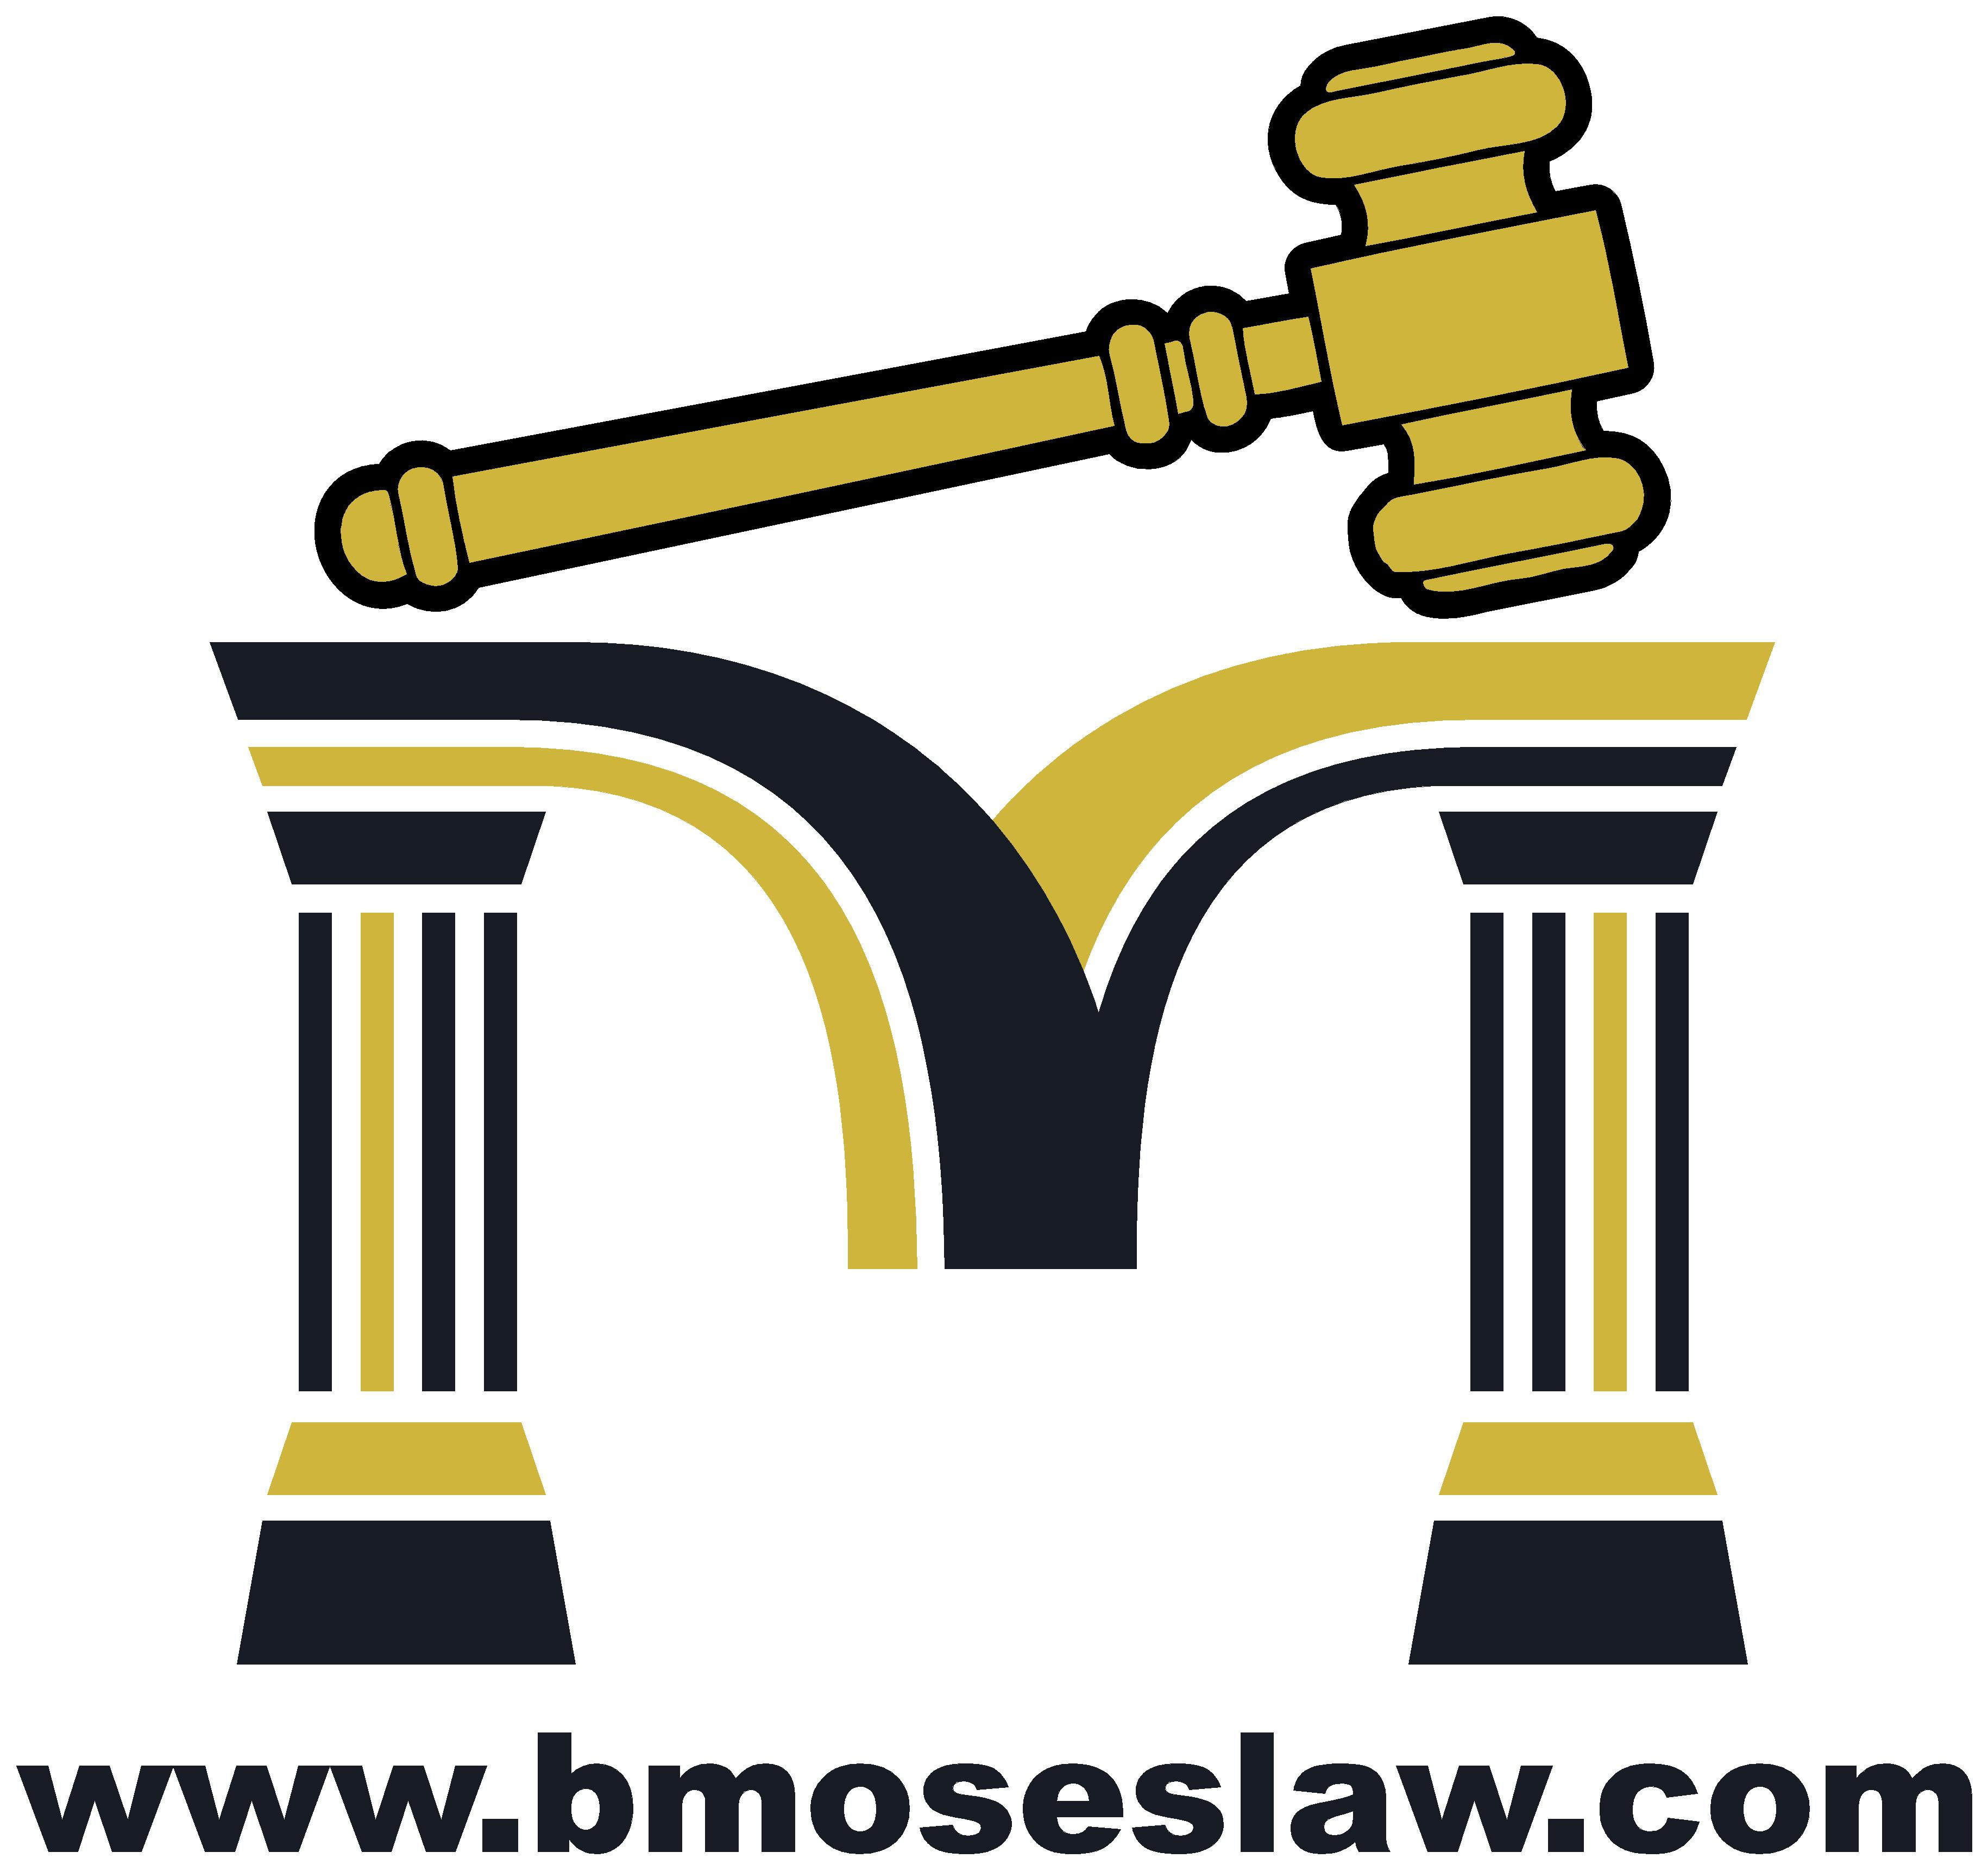 Law Office of Brodney J. Moses, PLLC image 0